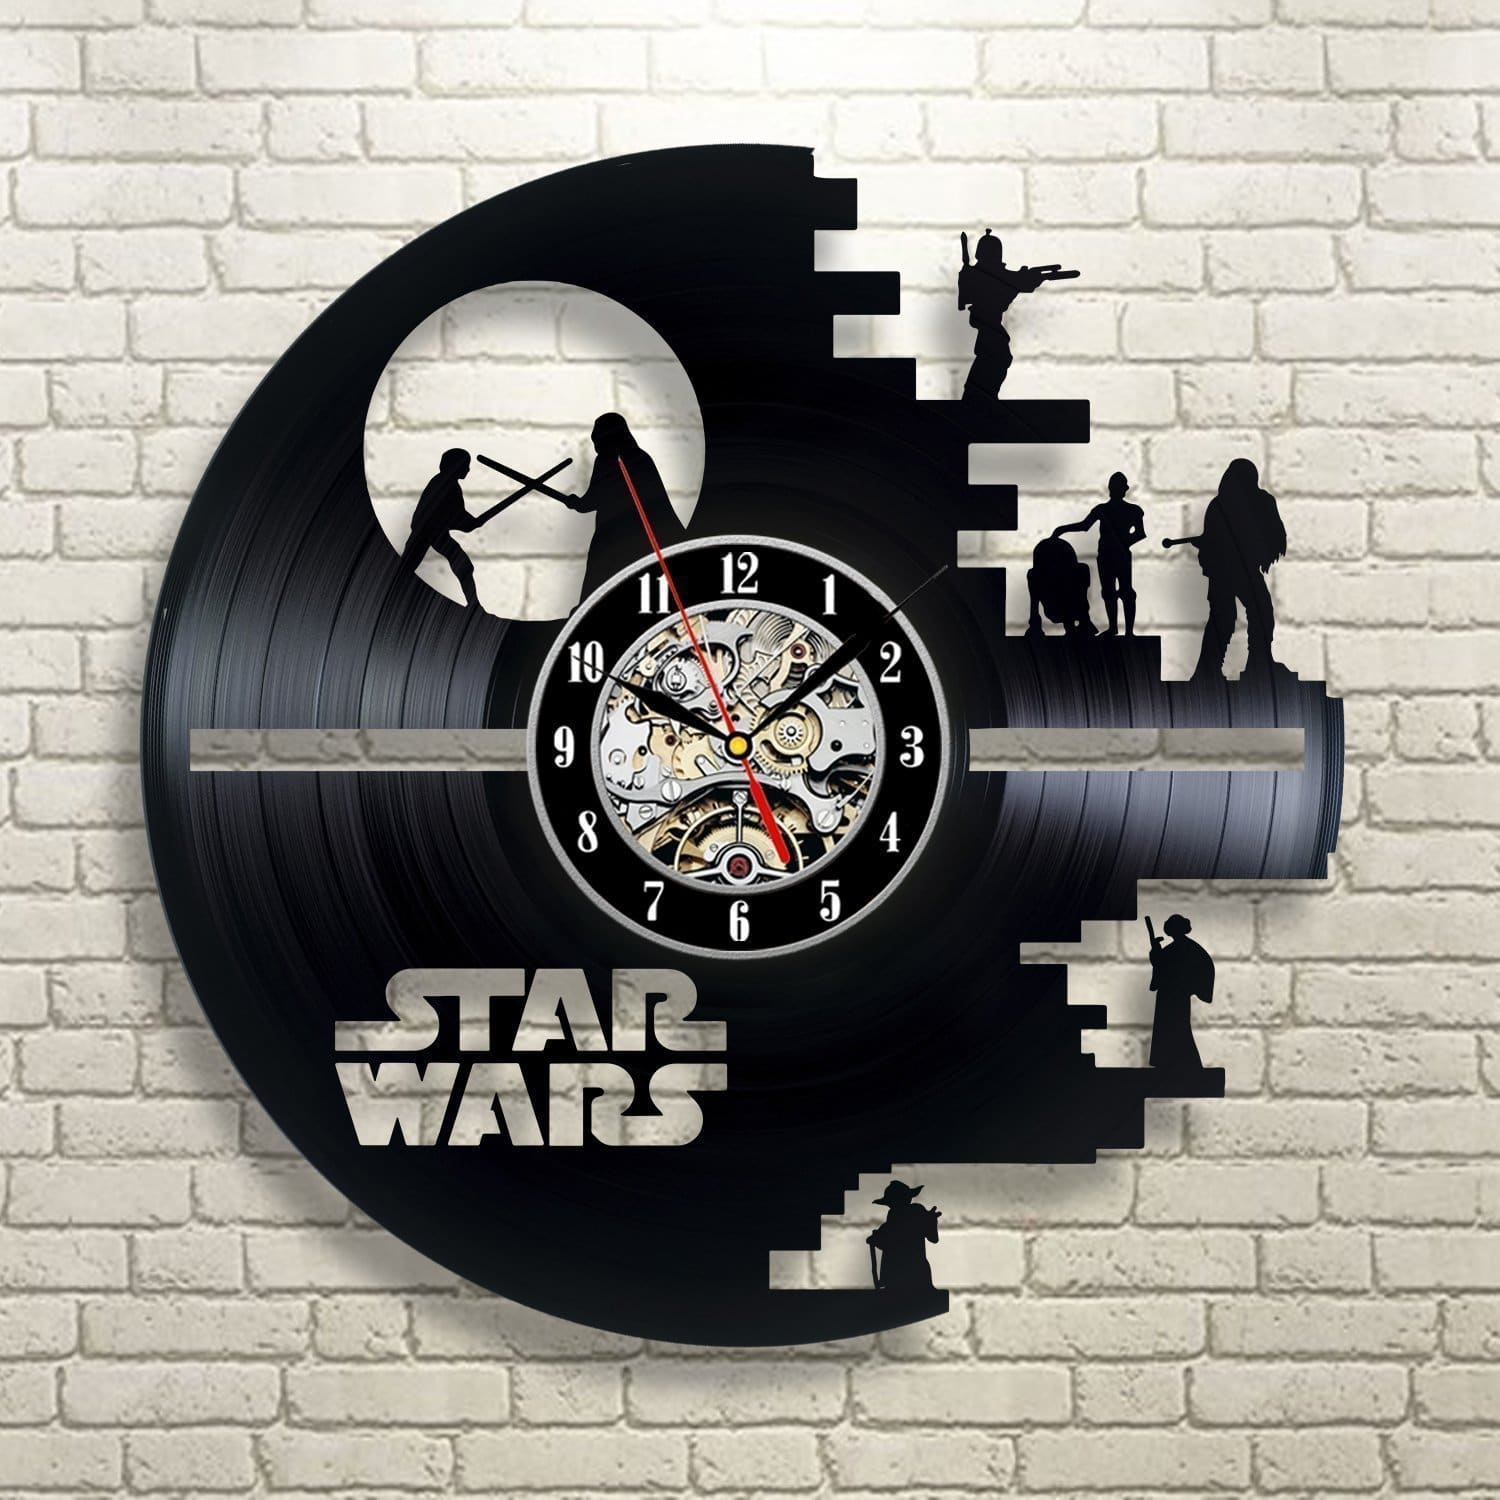 This vinyl wall clock is the one of the coolest Star Wars gifts